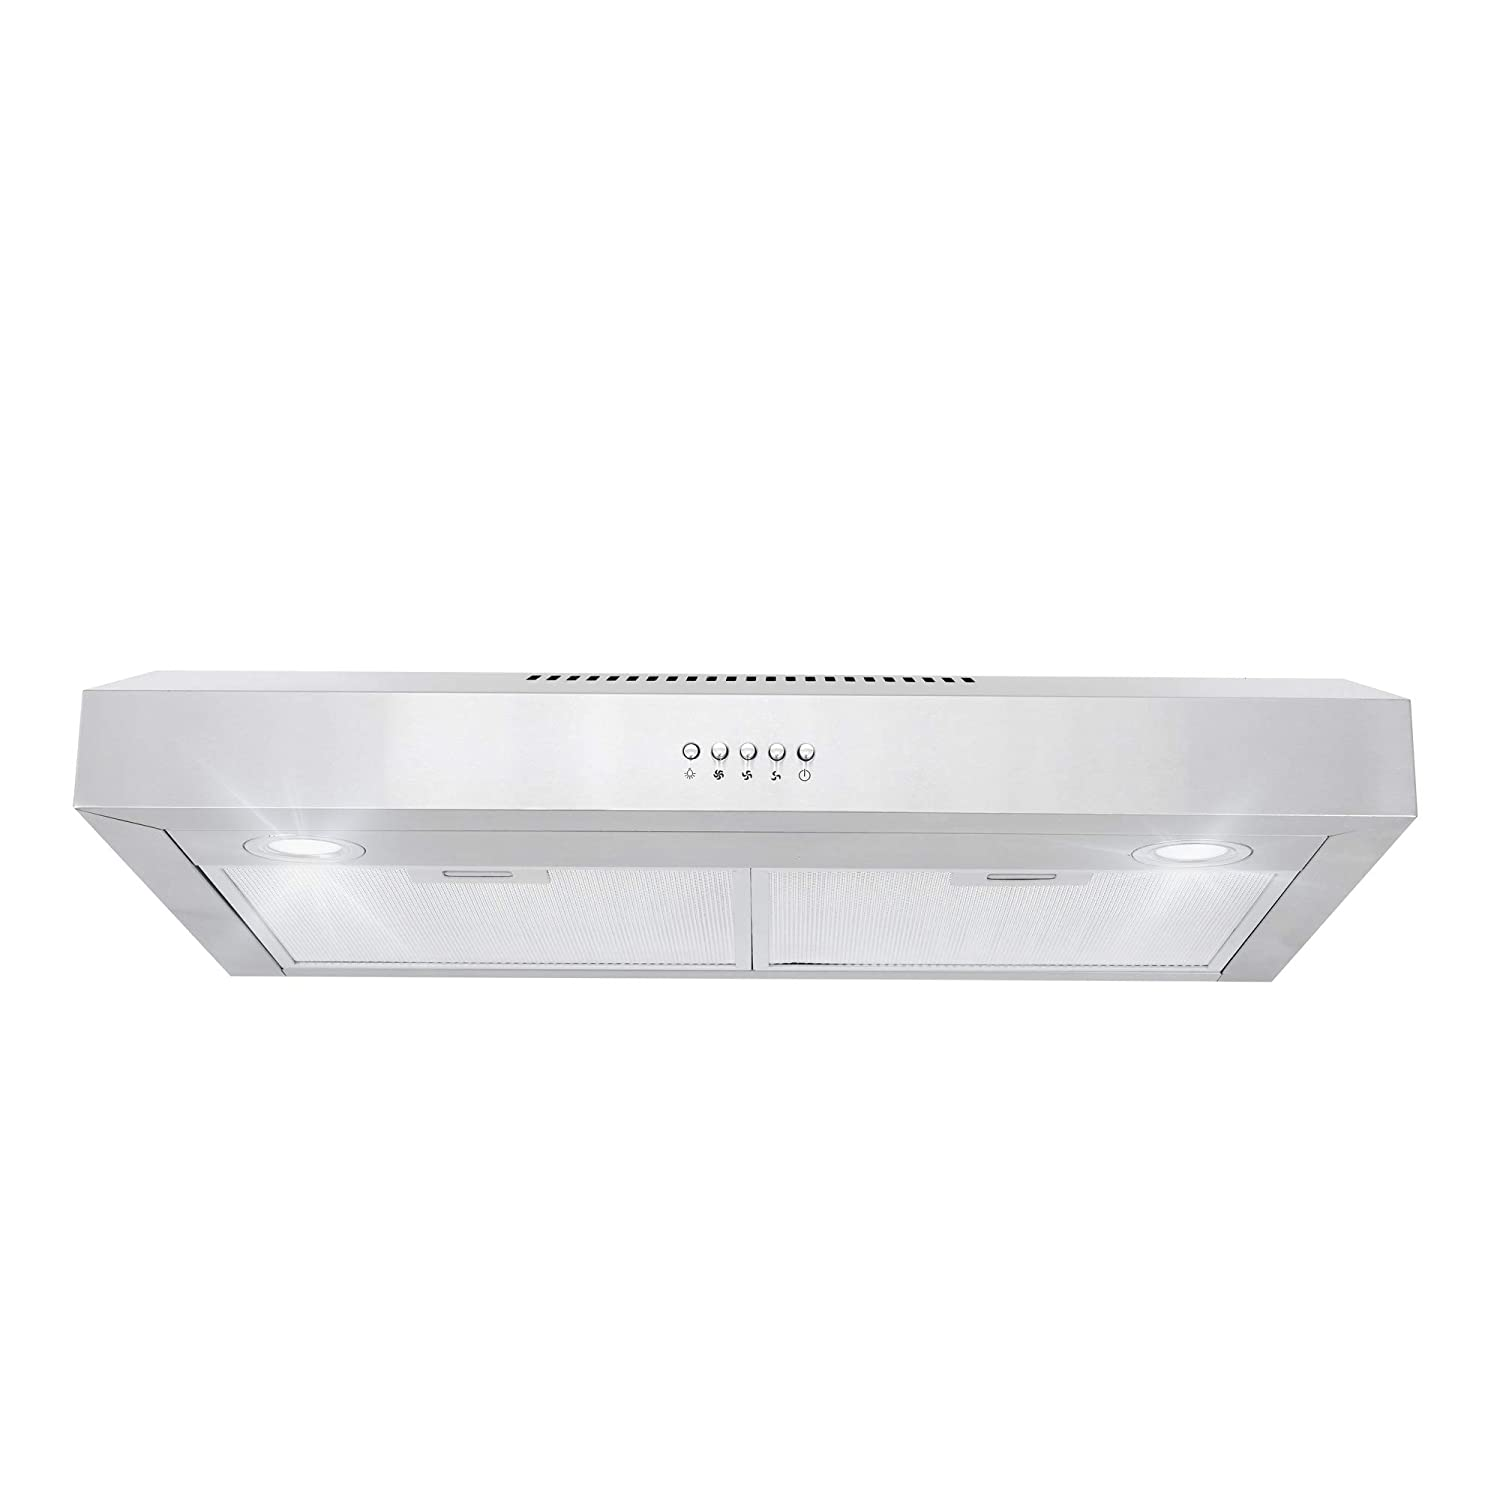 Cosmo 5U30 30-in Under-Cabinet Range Hood 250-CFM | Ducted / Ductless Convertible Top / Back Duct , Slim Kitchen Stove Vent , 3 Speed Exhaust Fan , Reusable Filter , with LED Light (Stainless Steel)